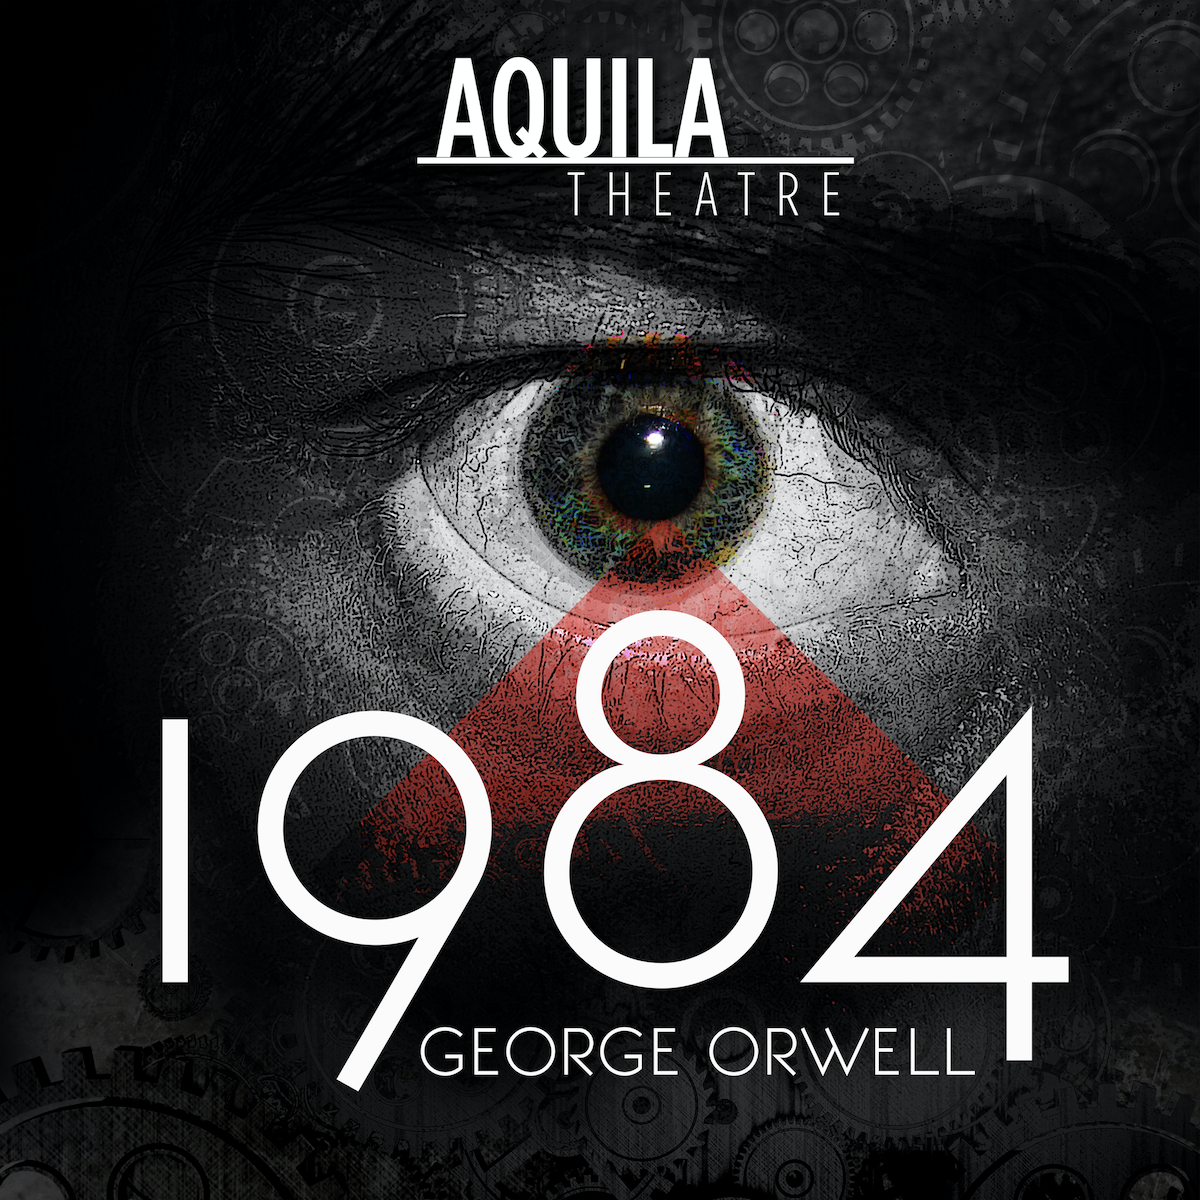 Copy of Current Productions — Aquila Theatre